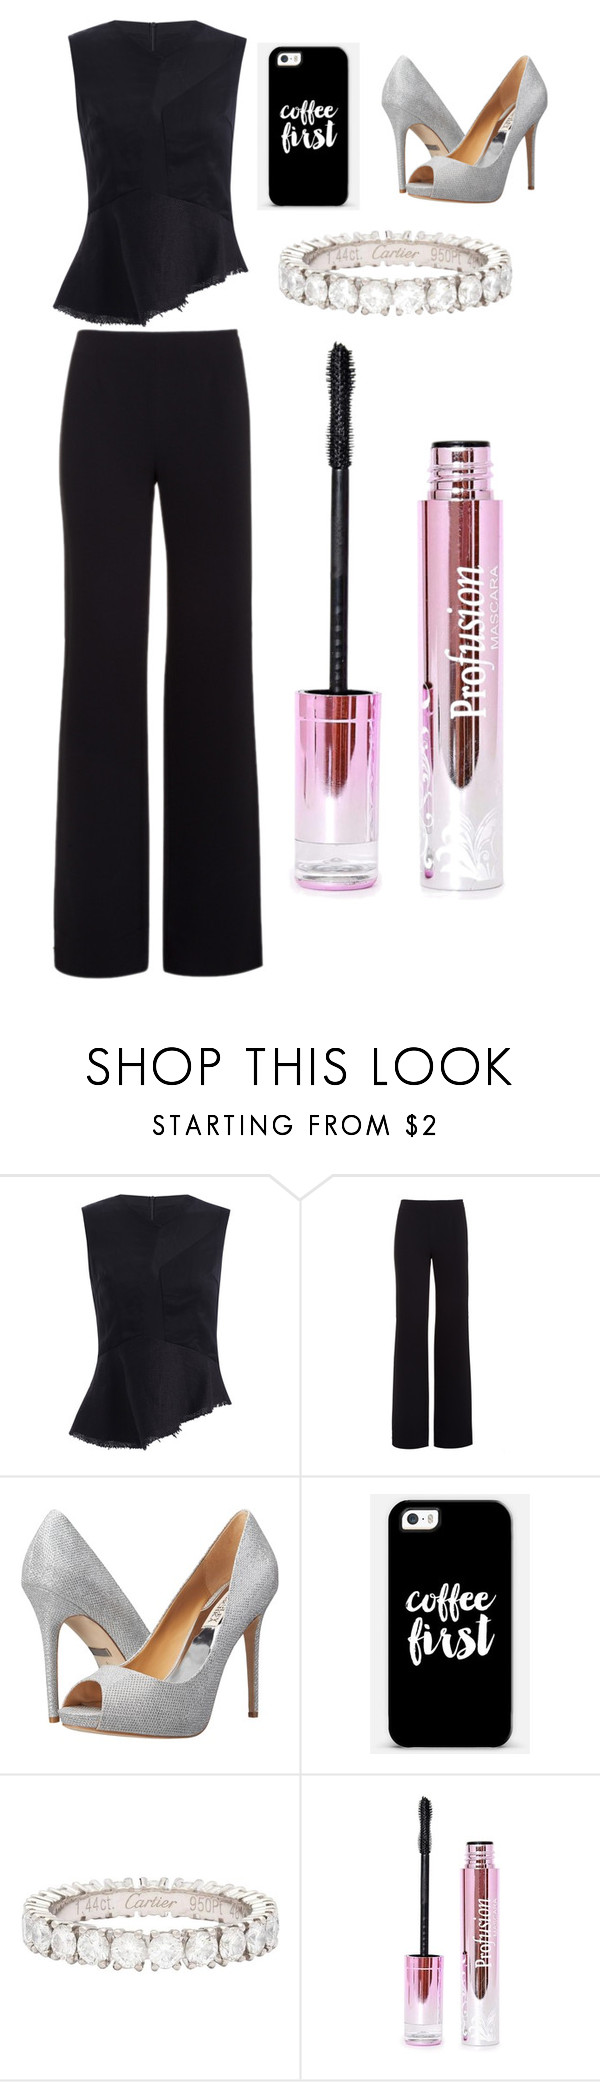 """""""Sans titre #852"""" by merveille67120 ❤ liked on Polyvore featuring Alexander Wang, Badgley Mischka, Casetify and Cartier"""